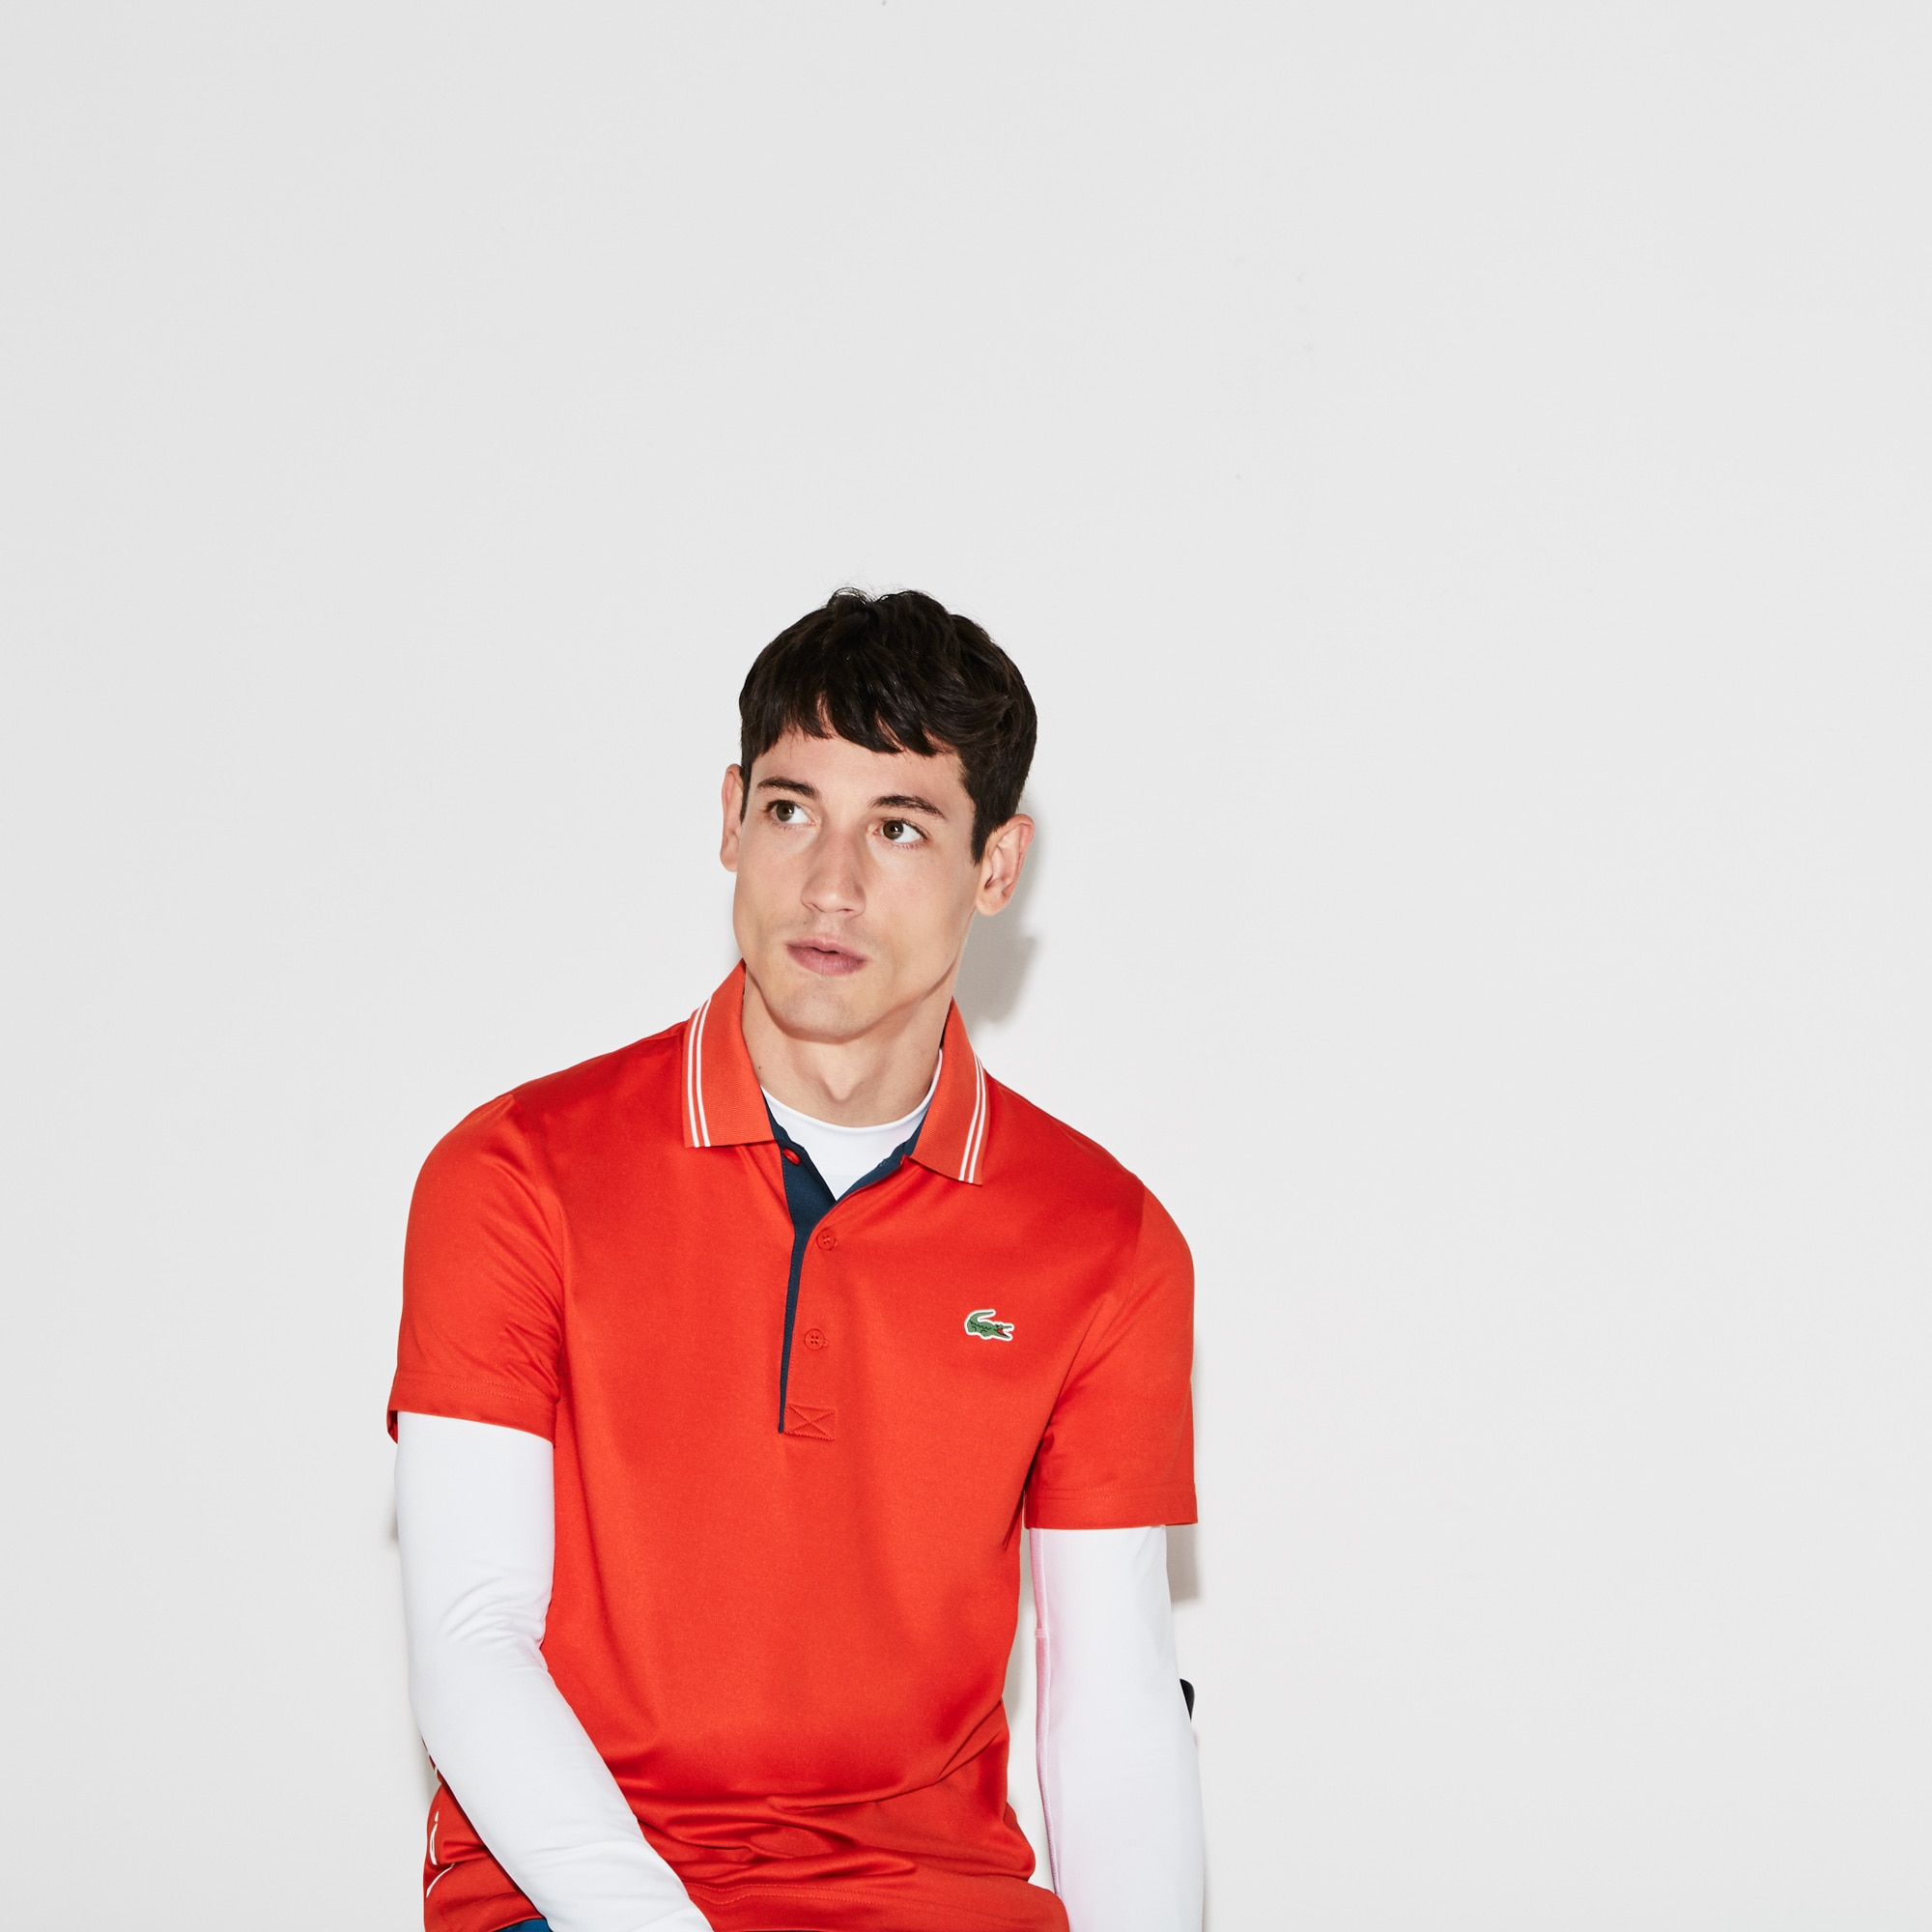 Men's Lacoste SPORT Lettering Stretch Technical Jersey Golf Polo Shirt